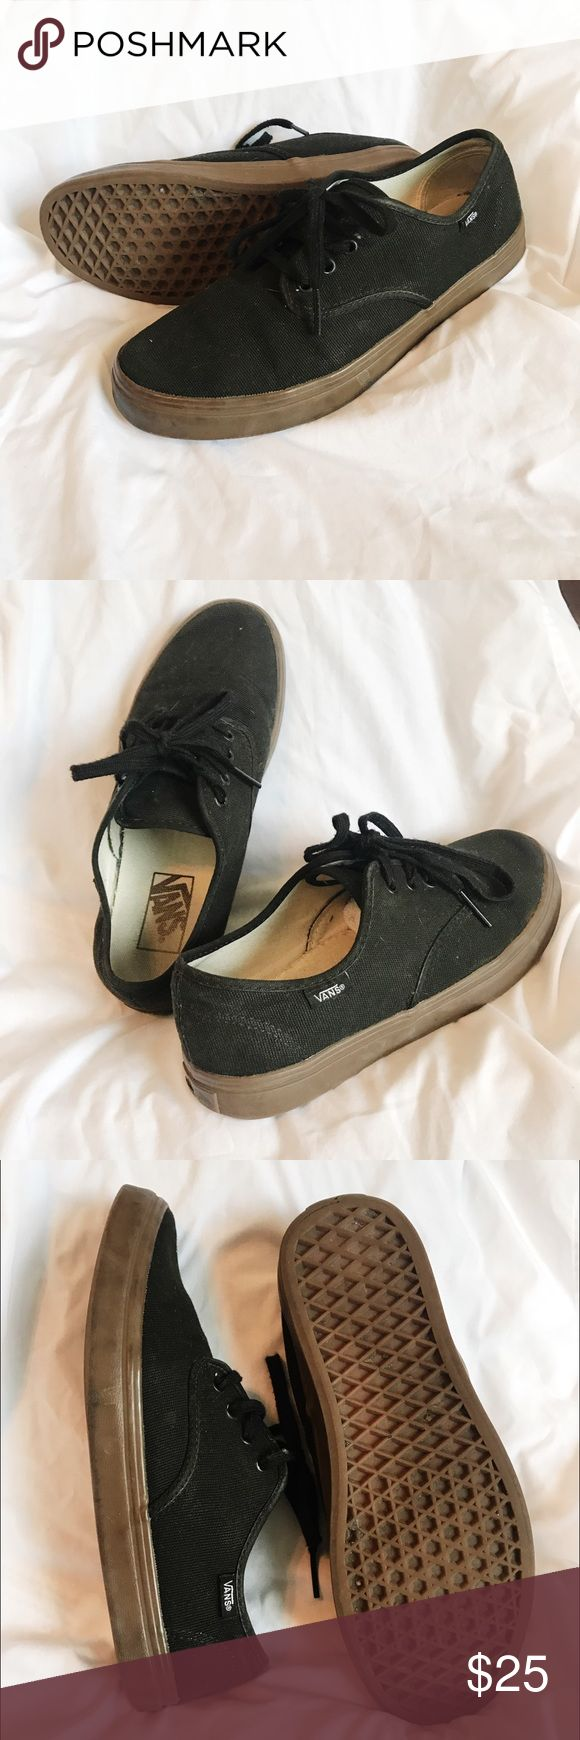 Black Gum Sole Vans Good used condition and already broken in so I did the hard part for you! :) style not sold anymore, gum sole with black canvas material. Last picture included for condition transparency. Always wore socks with these! :) Vans Shoes Sneakers